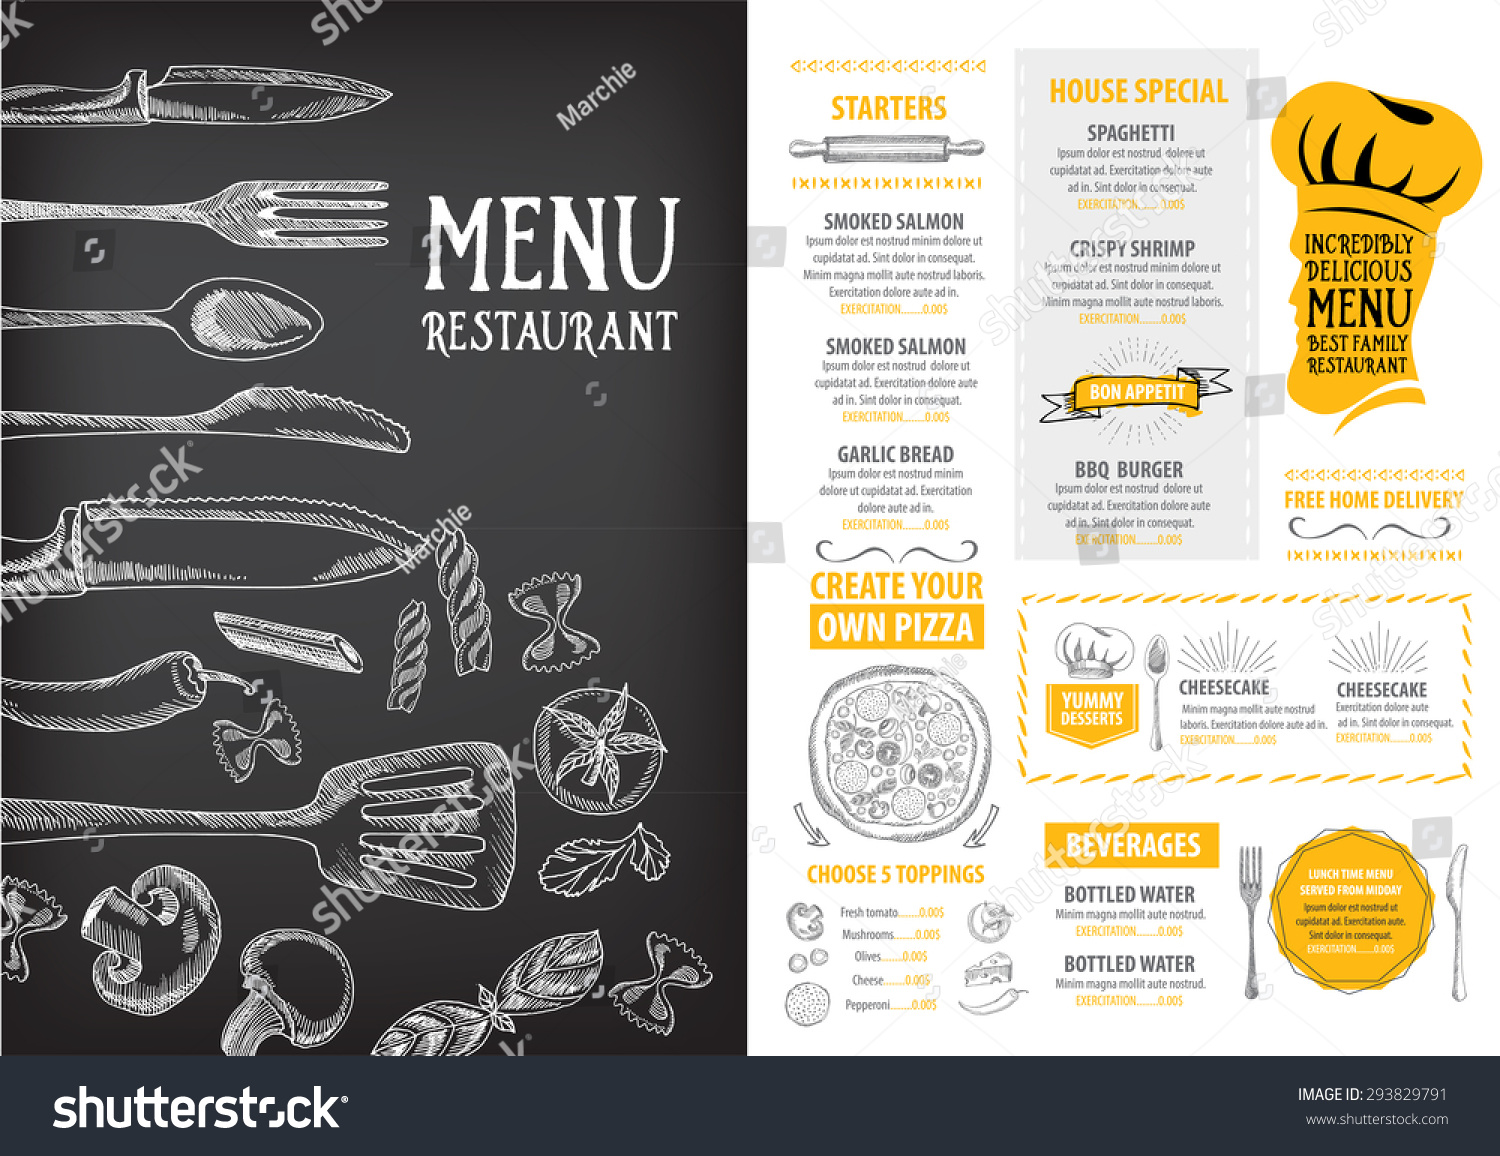 Restaurant Cafe Menu Template Design Food Stock Vector 293829791   Shutterstock